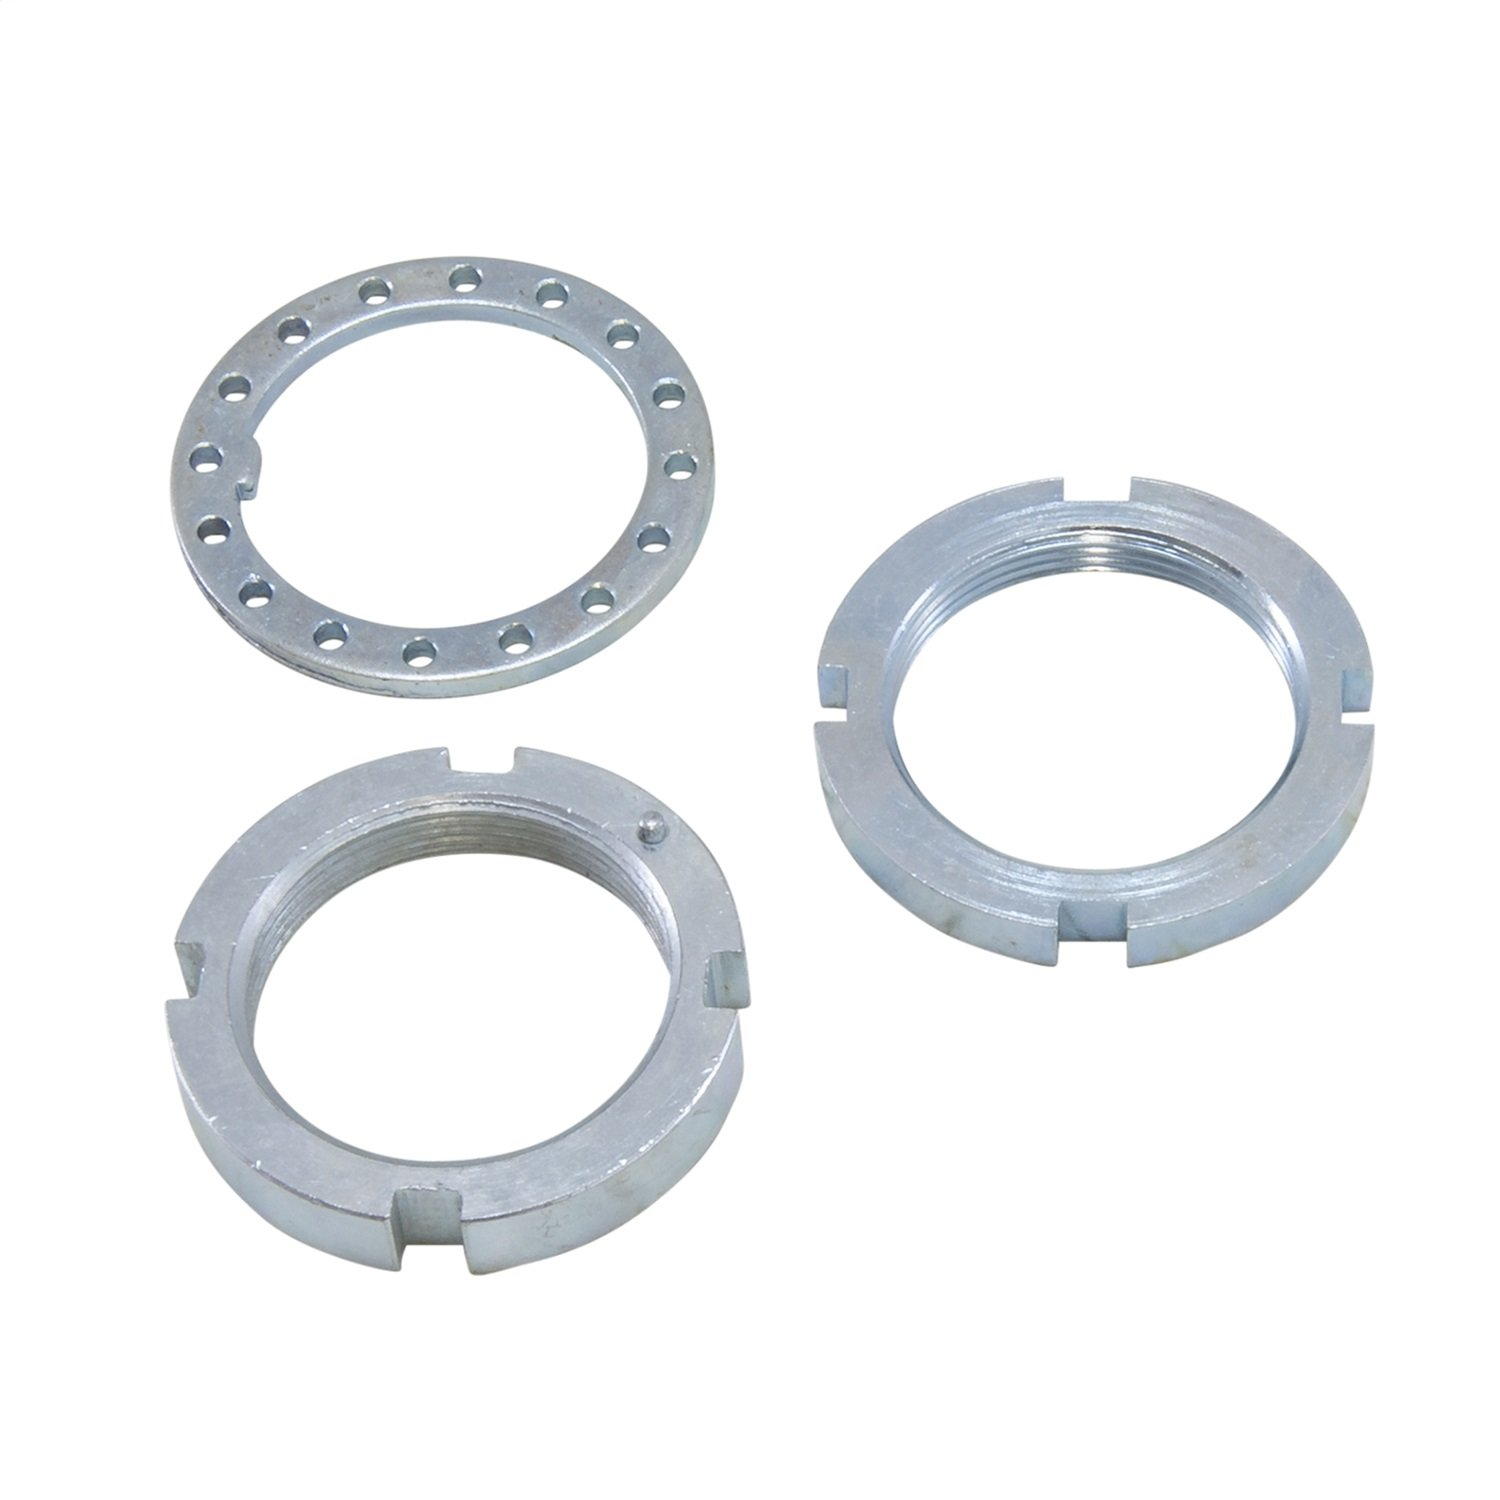 Yukon Gear & Axle (AK D44-NUTS-CJ) Replacement Spindle Nut & Washer Kit for Dana 30/Dana 44